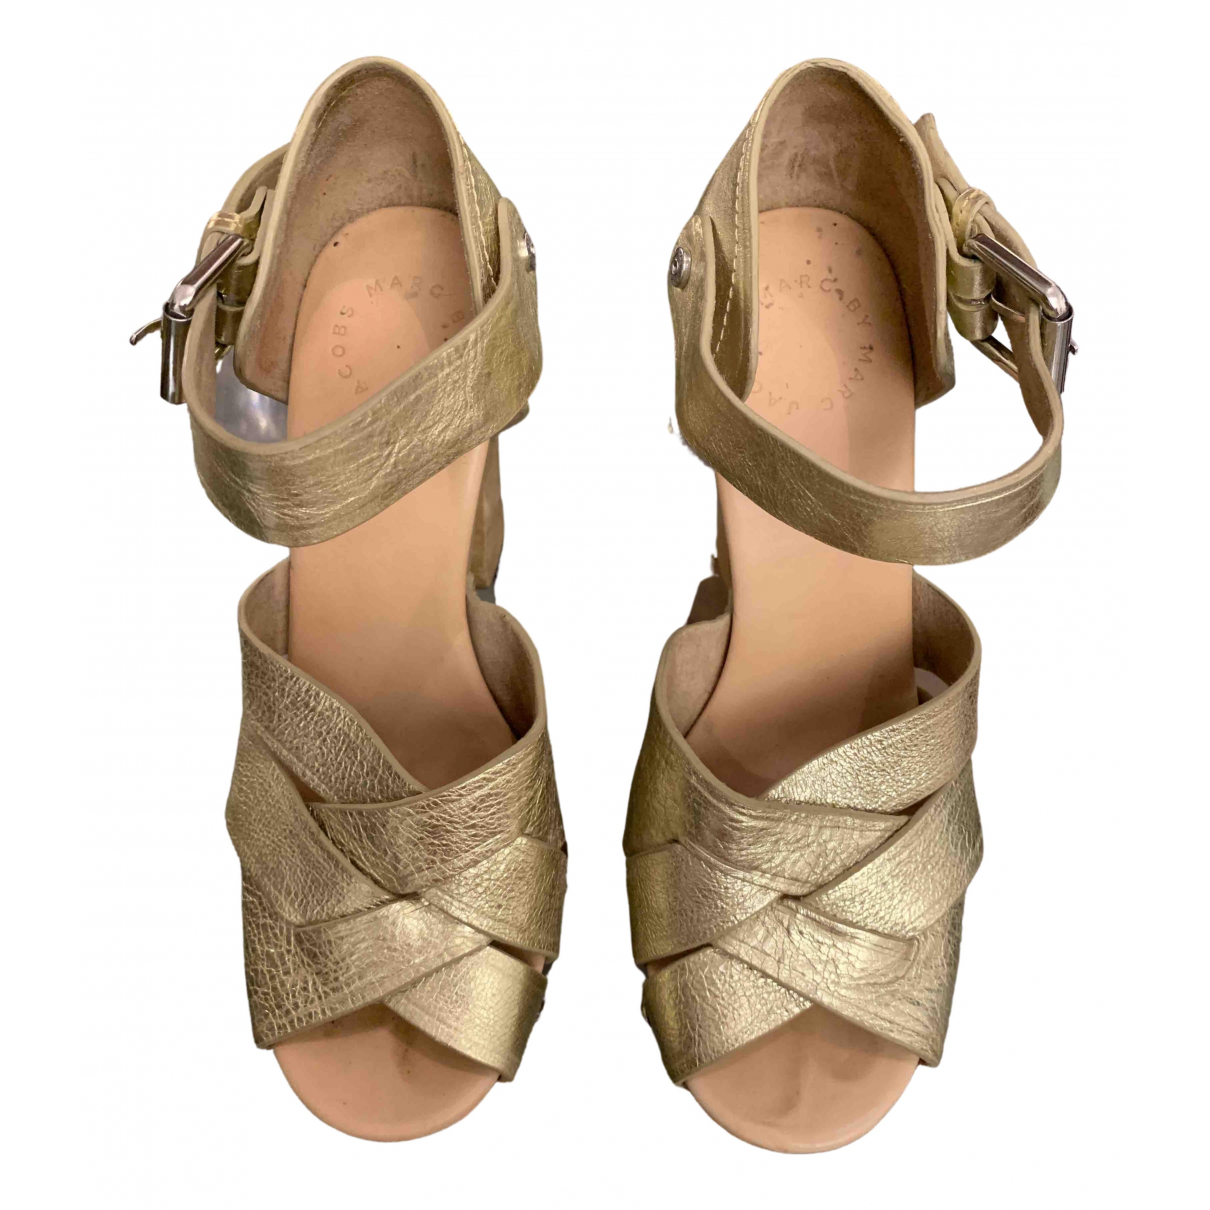 Marc Jacobs \N Gold Leather Mules & Clogs for Women 38 EU